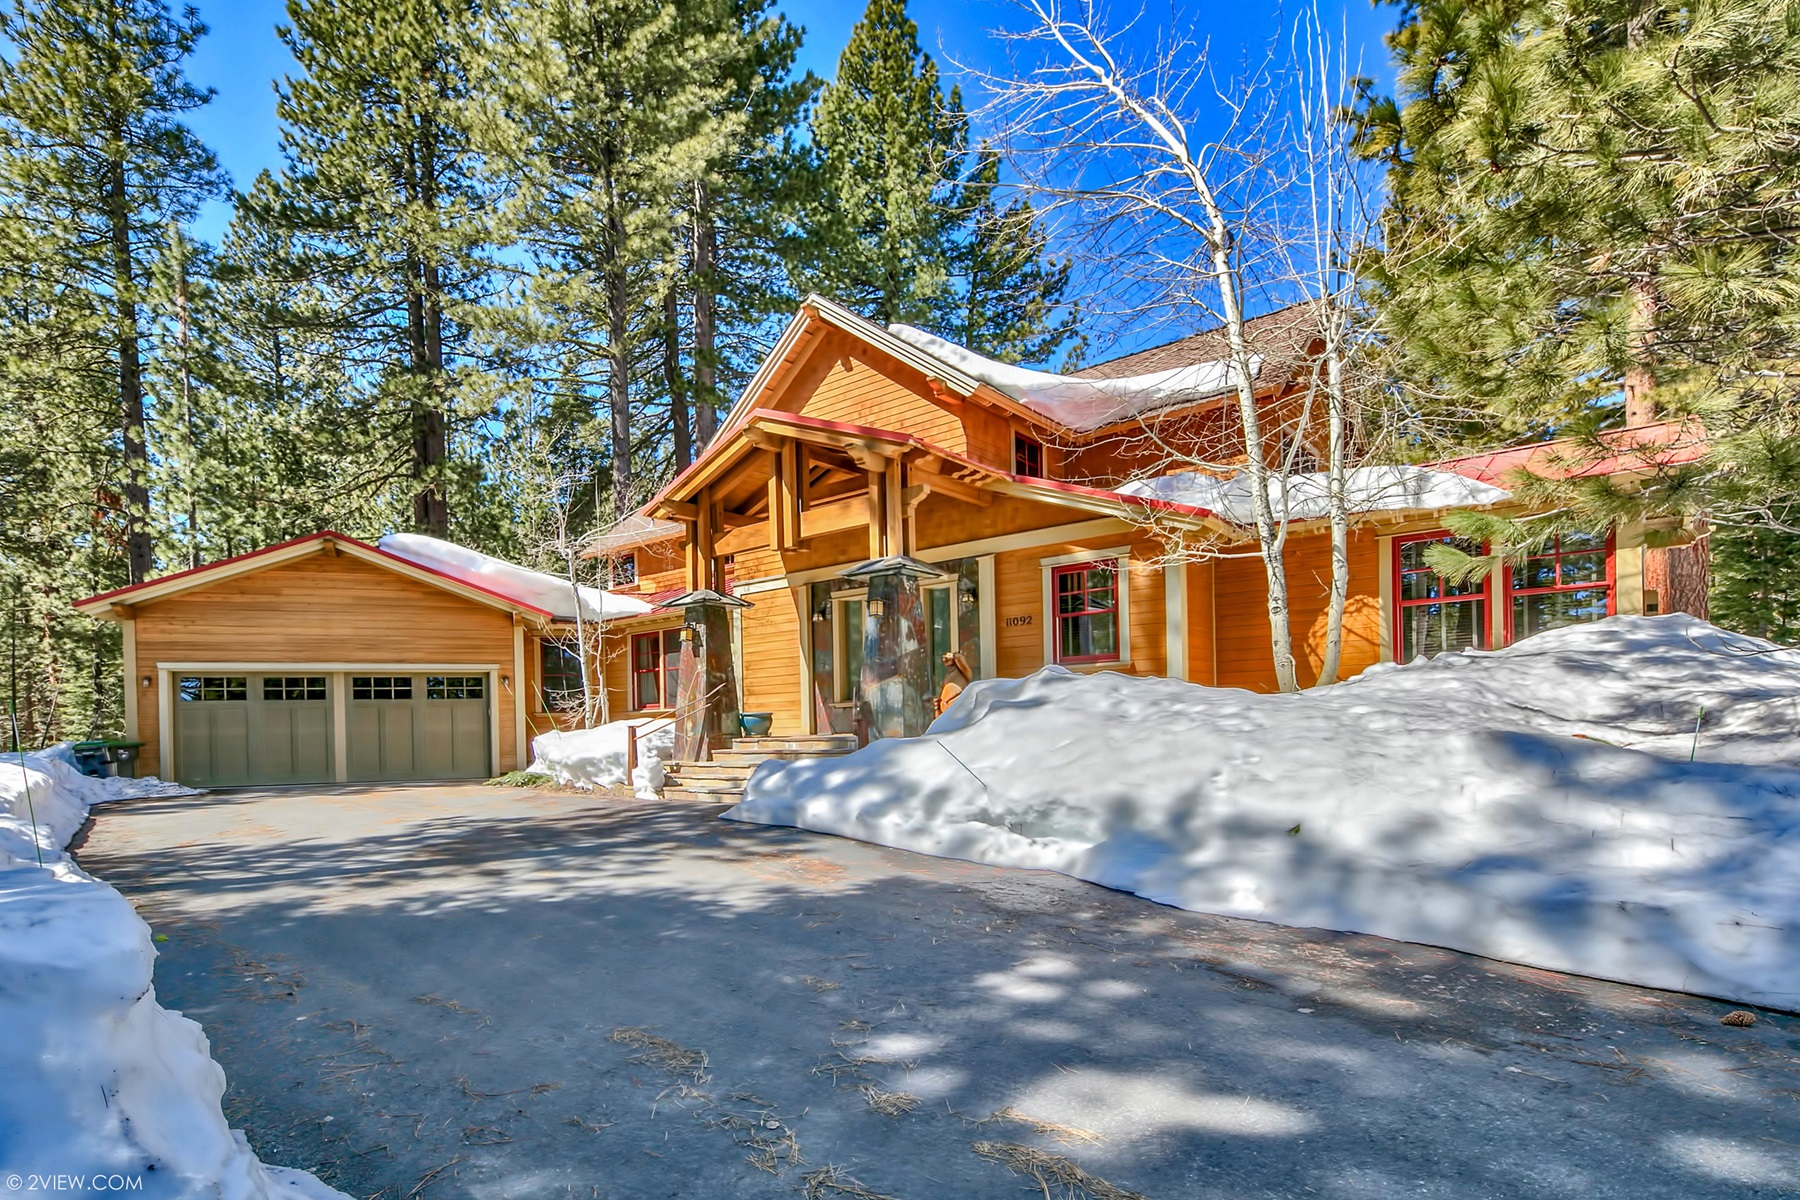 Casa Unifamiliar por un Venta en 11092 China Camp Road, Truckee, CA 11092 China Camp Road Truckee, California 96161 Estados Unidos